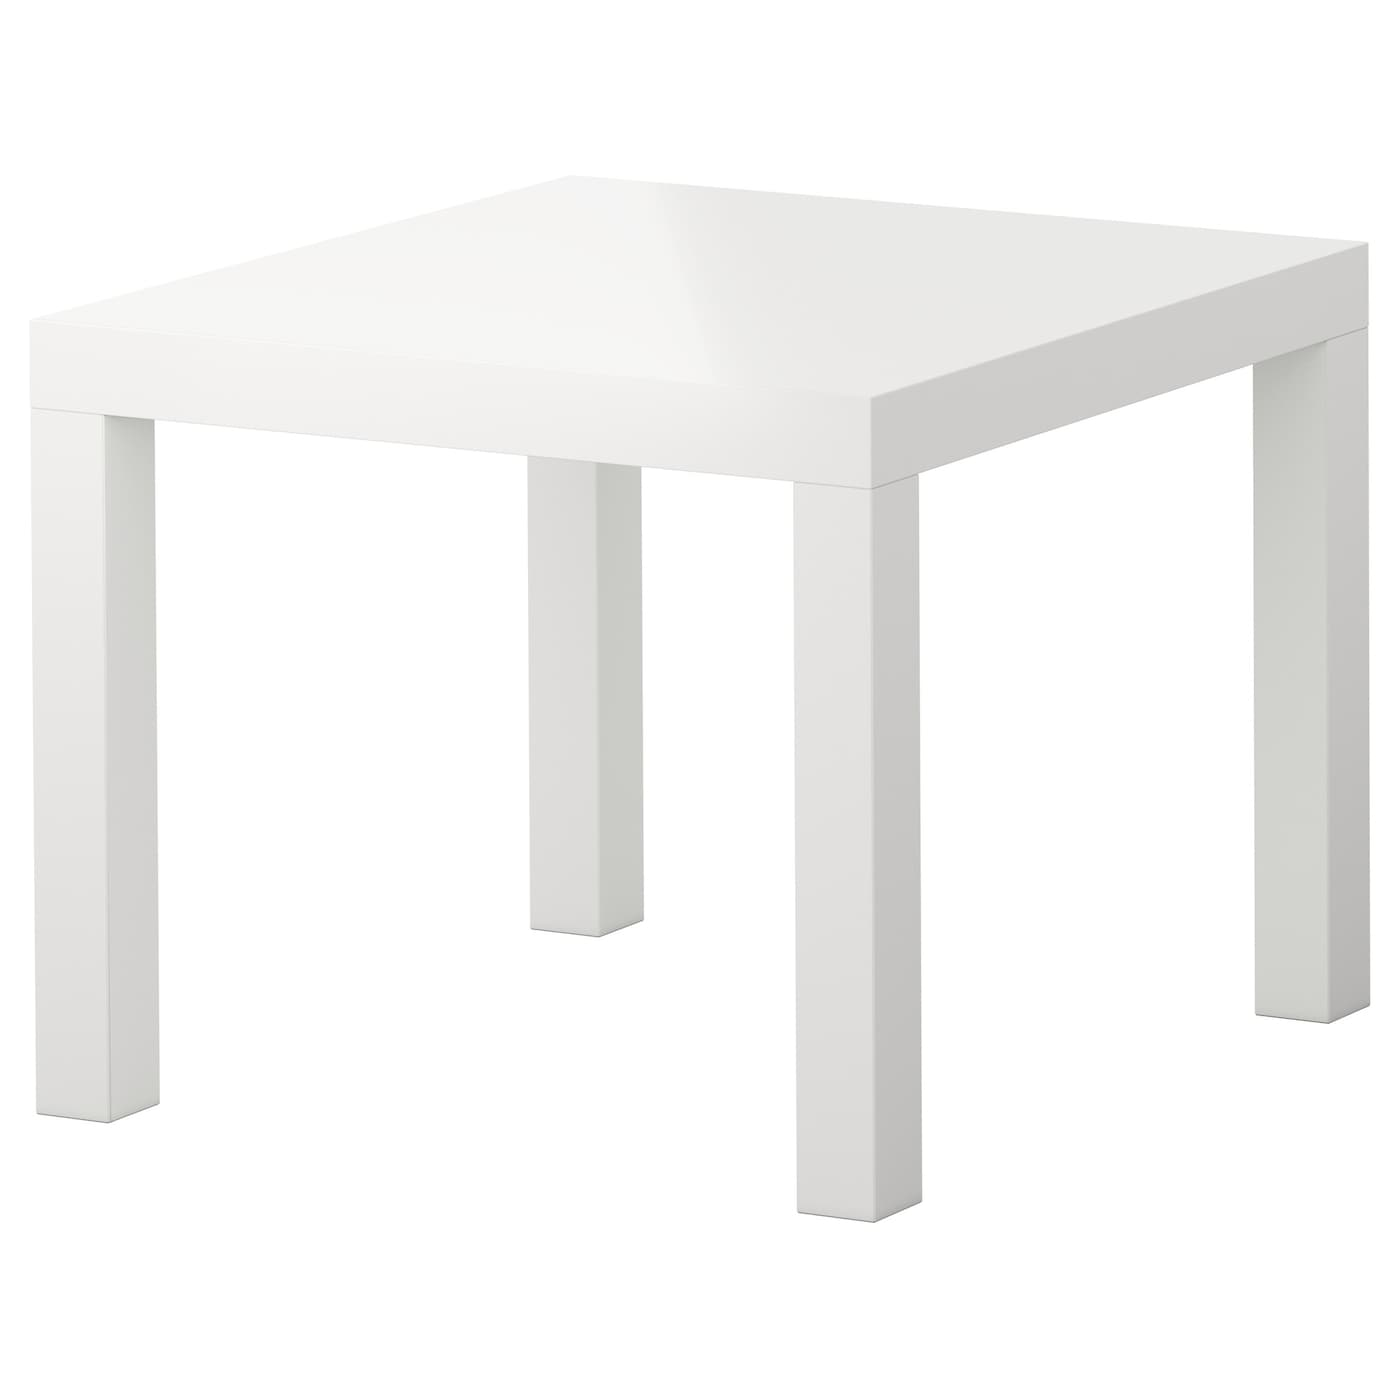 Lack side table high gloss white 55 x 55 cm ikea for Table de fusion ikea